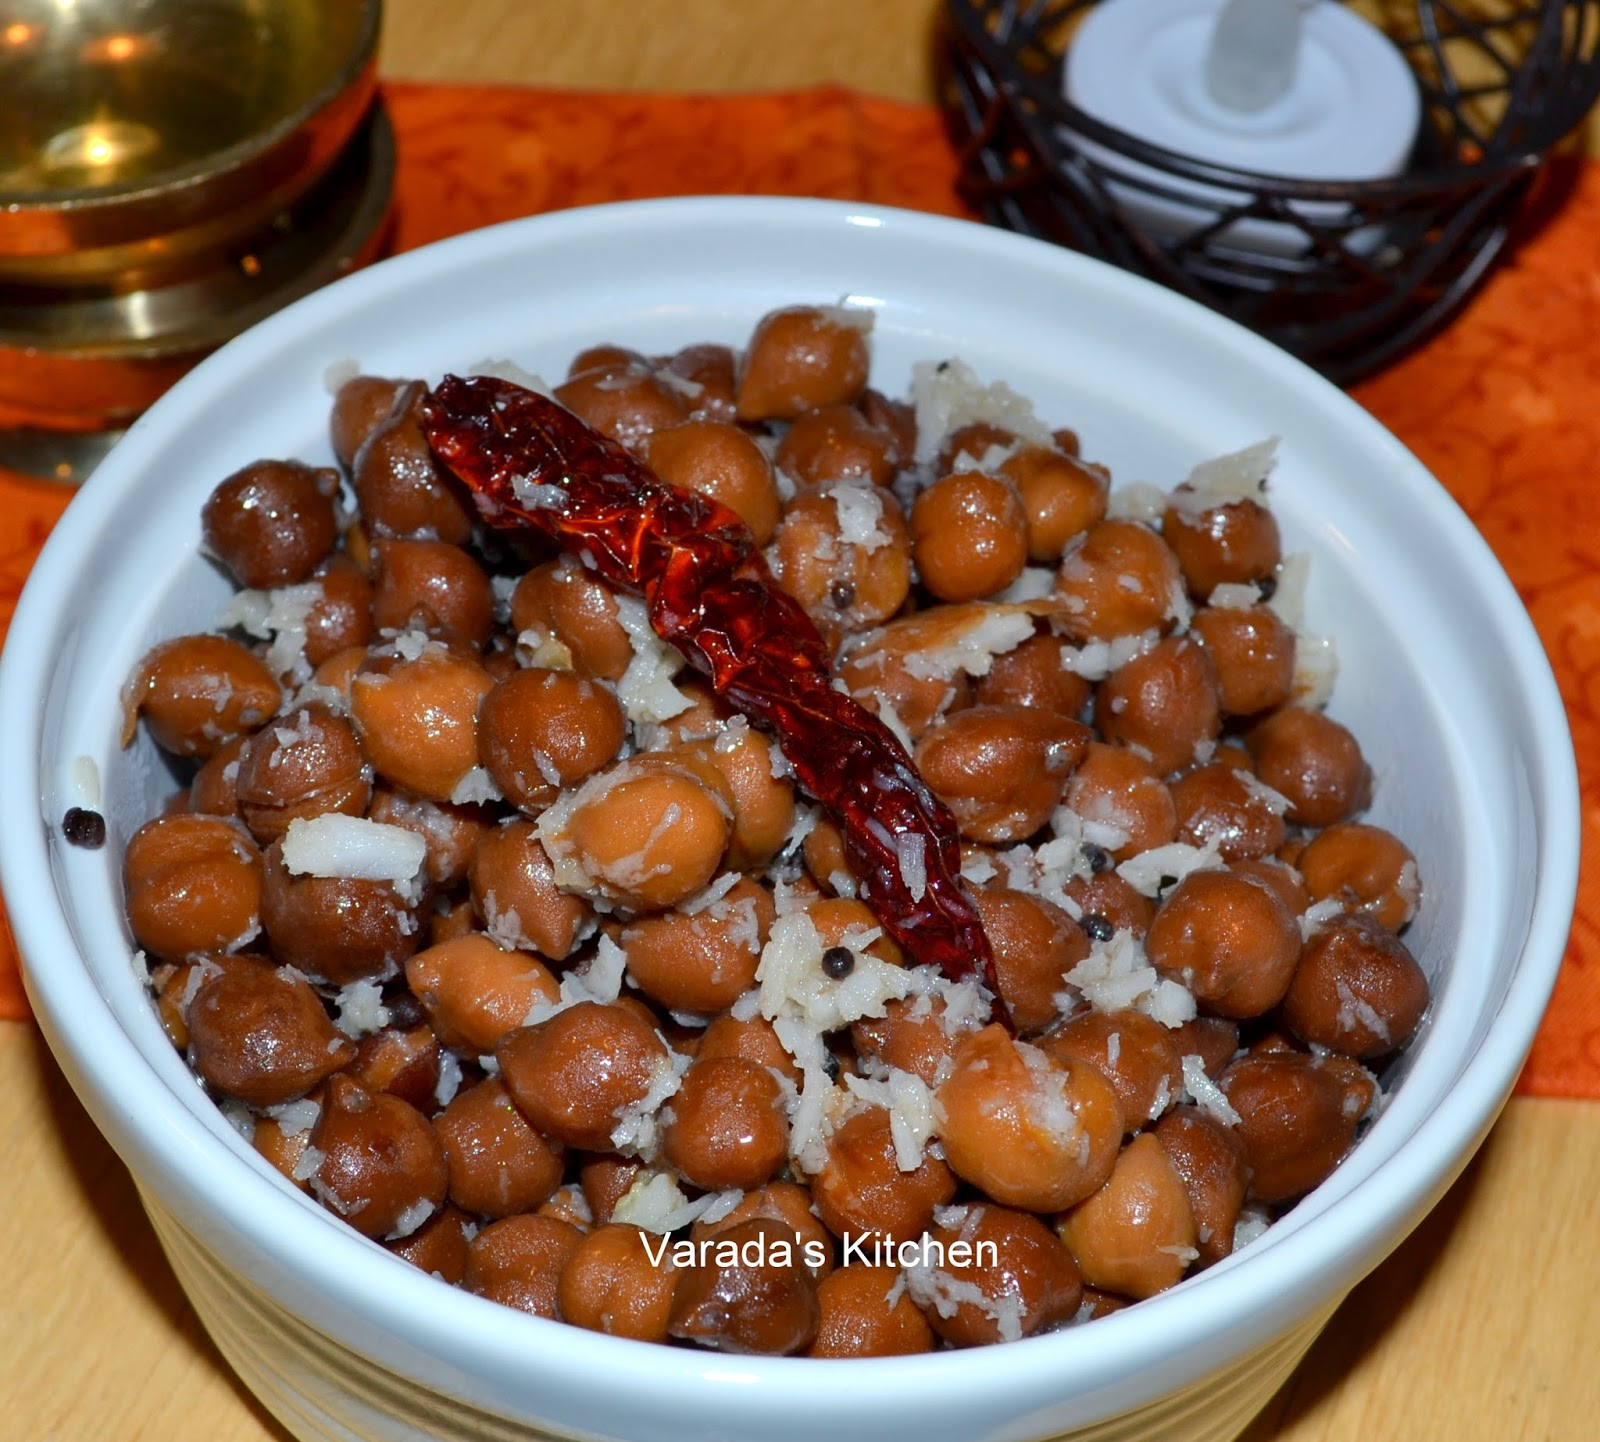 Varada's Kitchen: Sundal (Black Channa with Coconut)